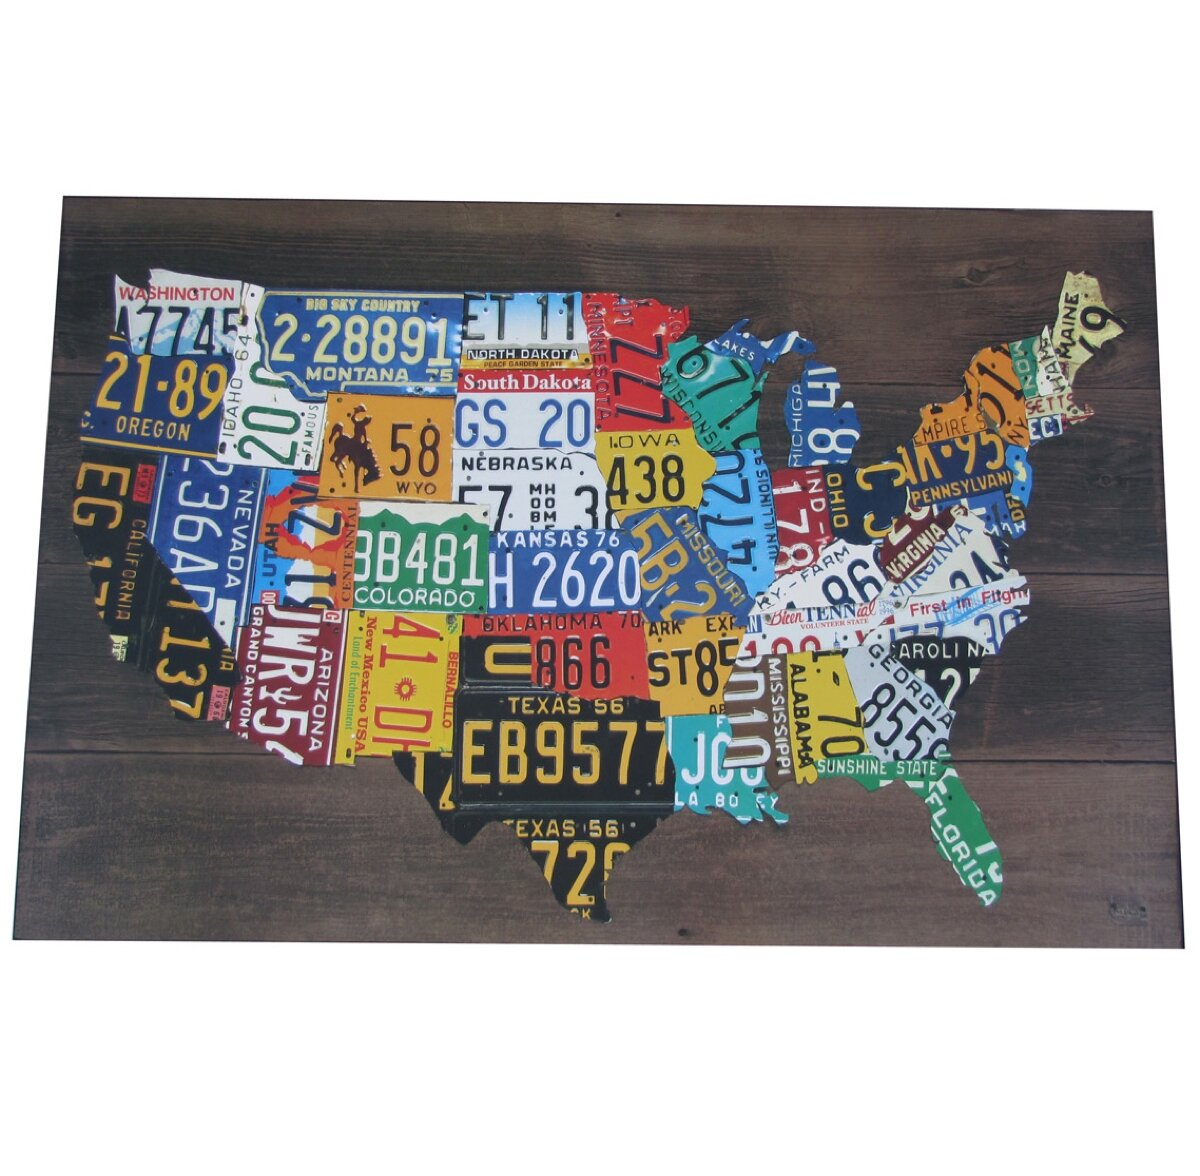 Bamboo Wood Design License Plate Tag Frame for Auto-Car-Truck